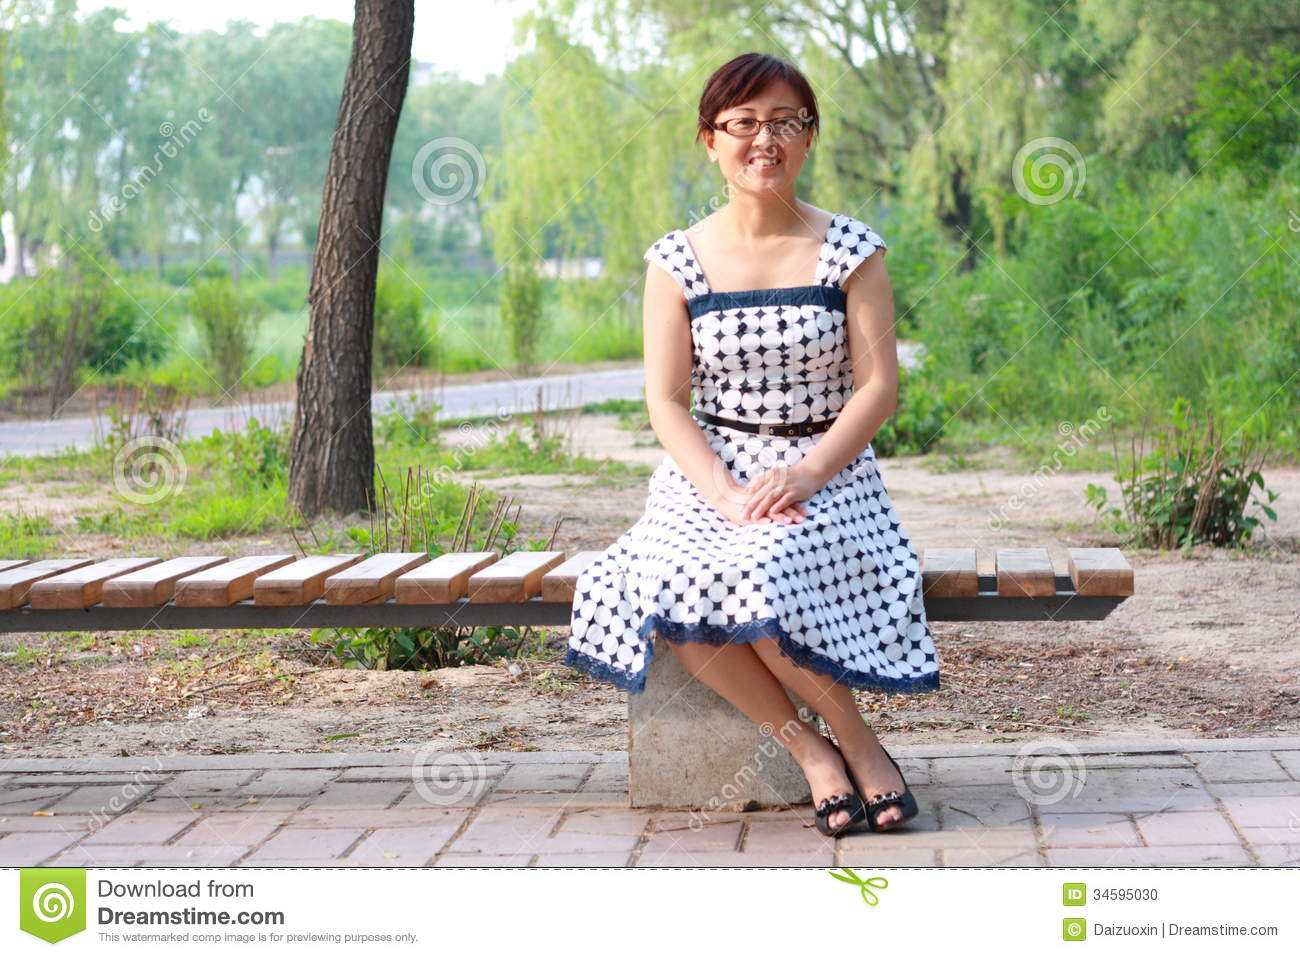 cedarpines park asian personals Cedarpines park's best 100% free asian girls dating site meet thousands of single asian women in cedarpines park with mingle2's free personal ads and chat rooms.